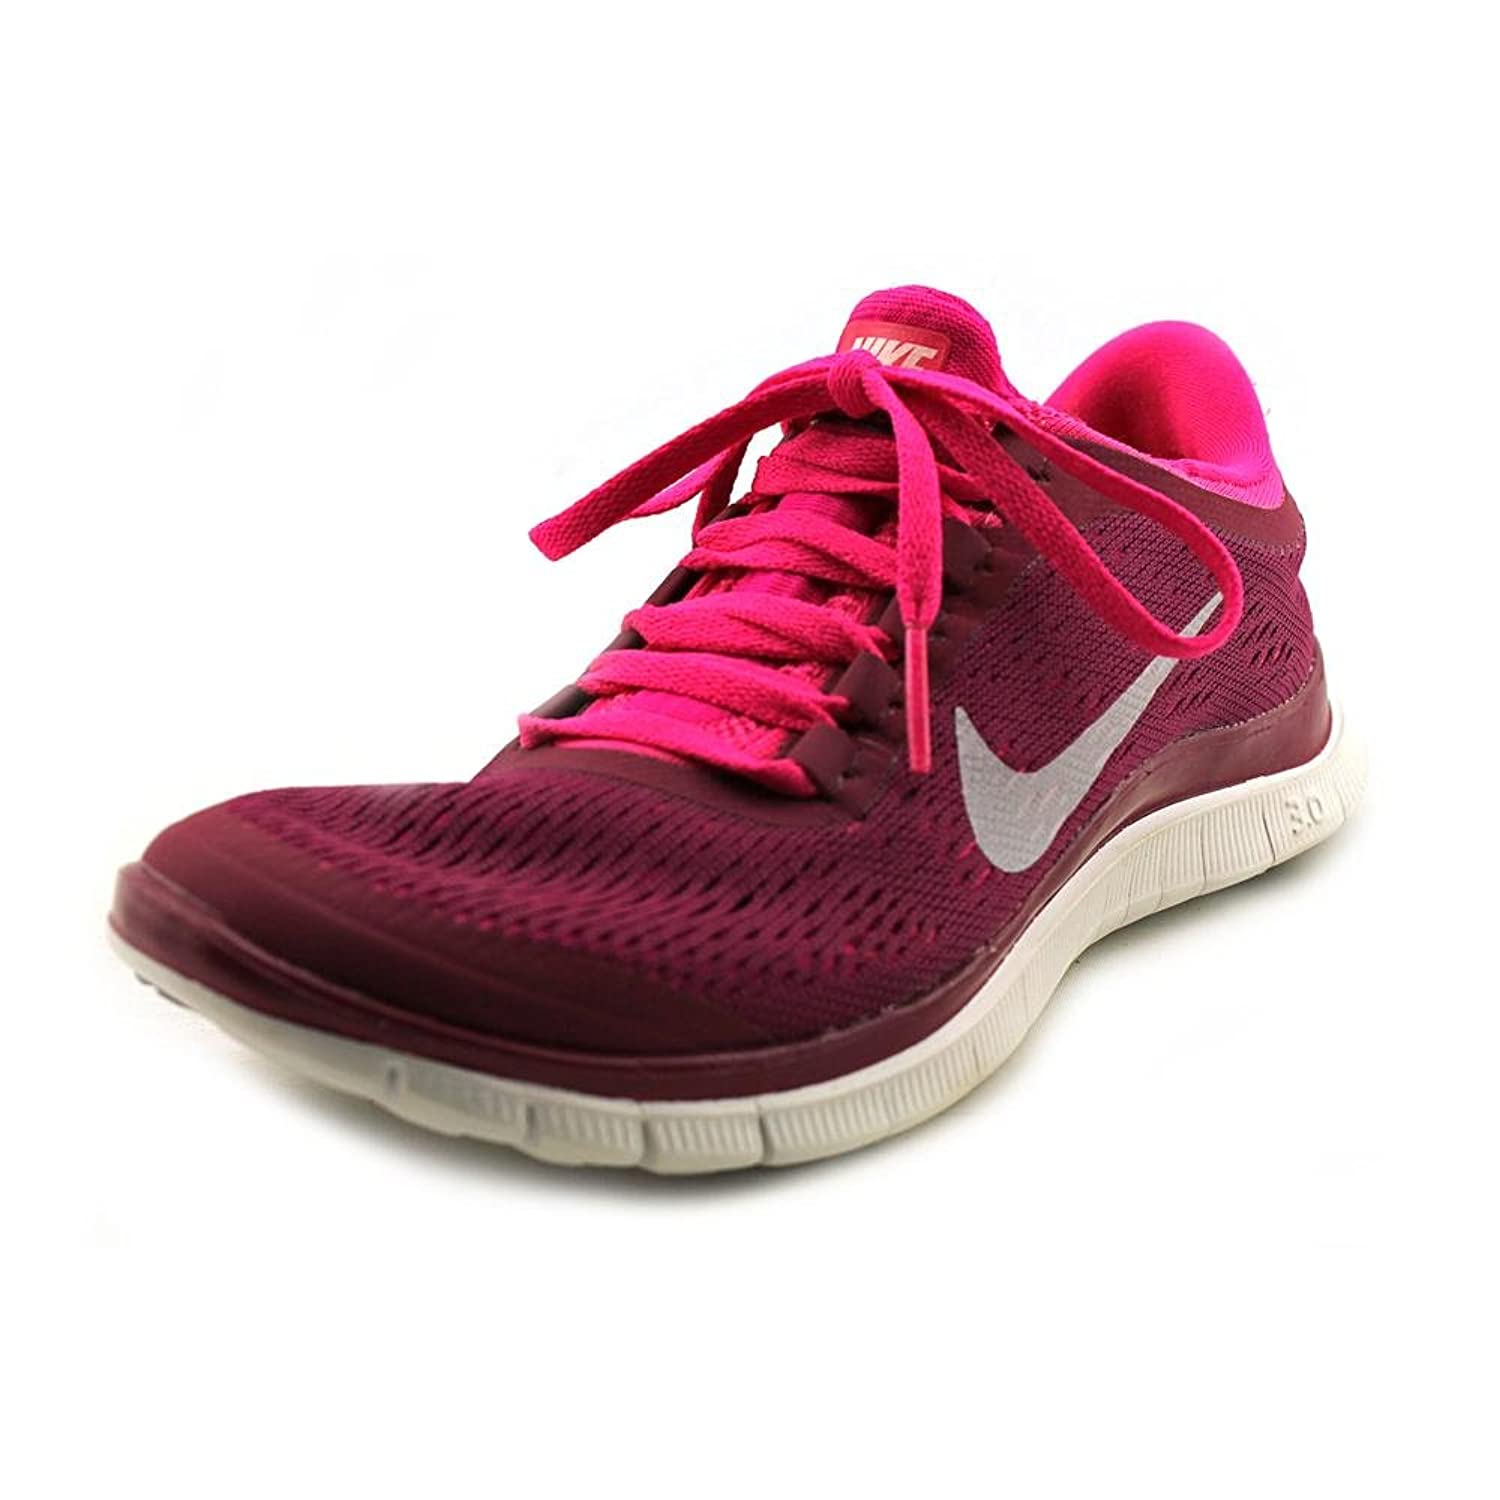 Enjoy Limit Discount Running Shoes Nike Free 3 0 Unisex Green Purple Shoes Discount Coupon